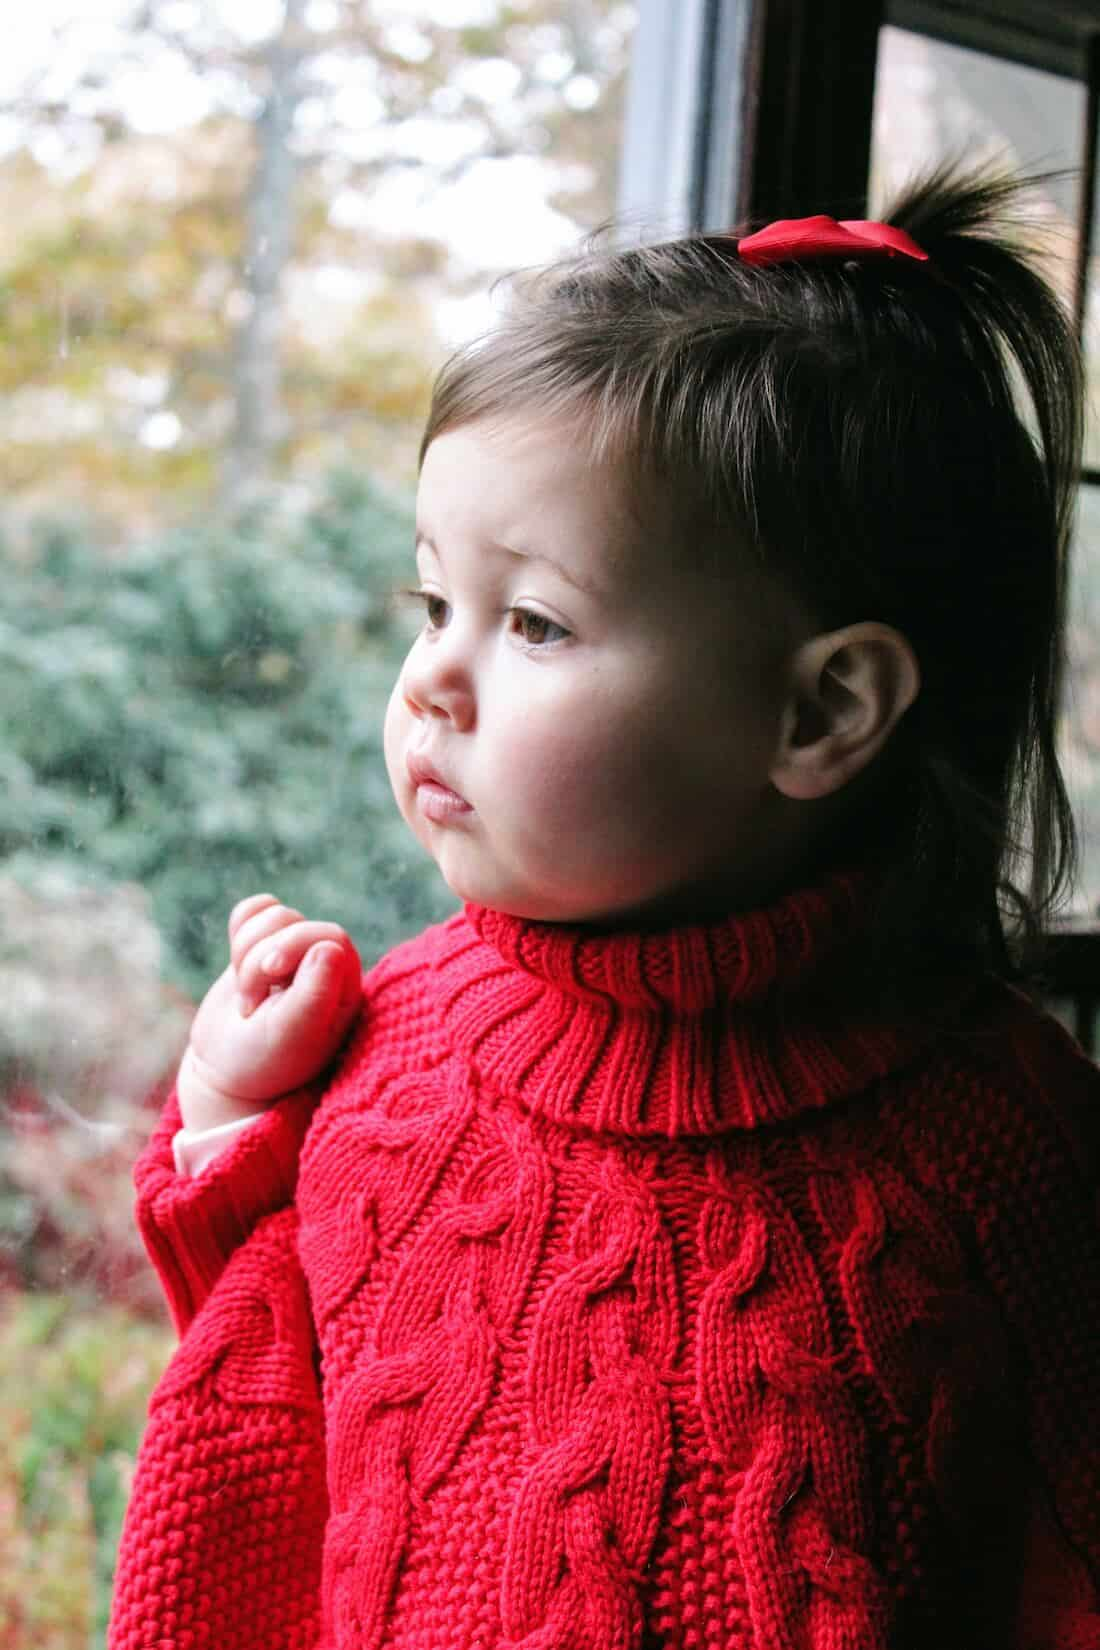 Toddler girl in red Christmas sweeter stares out window.